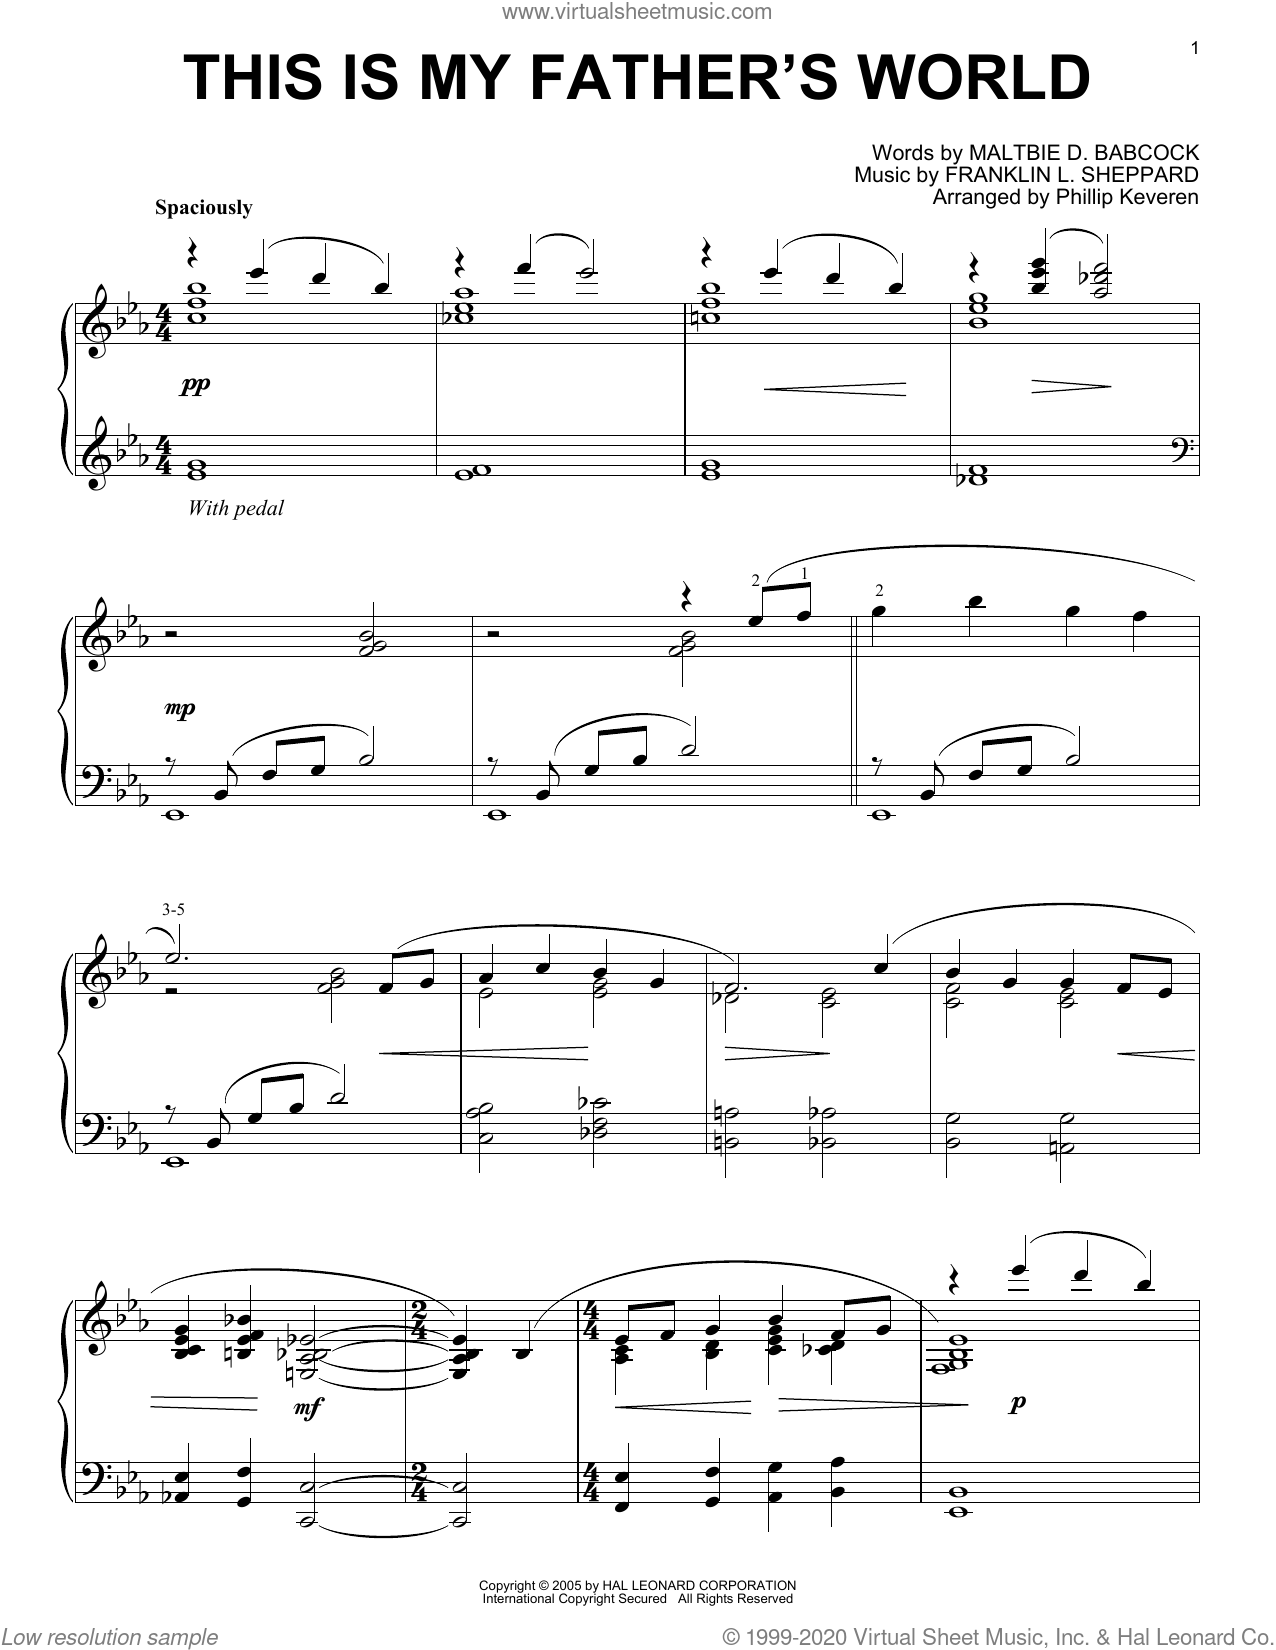 This Is My Father's World [Jazz version] (arr. Phillip Keveren) sheet music for piano solo by Maltbie D. Babcock, Phillip Keveren and Franklin L. Sheppard, intermediate skill level